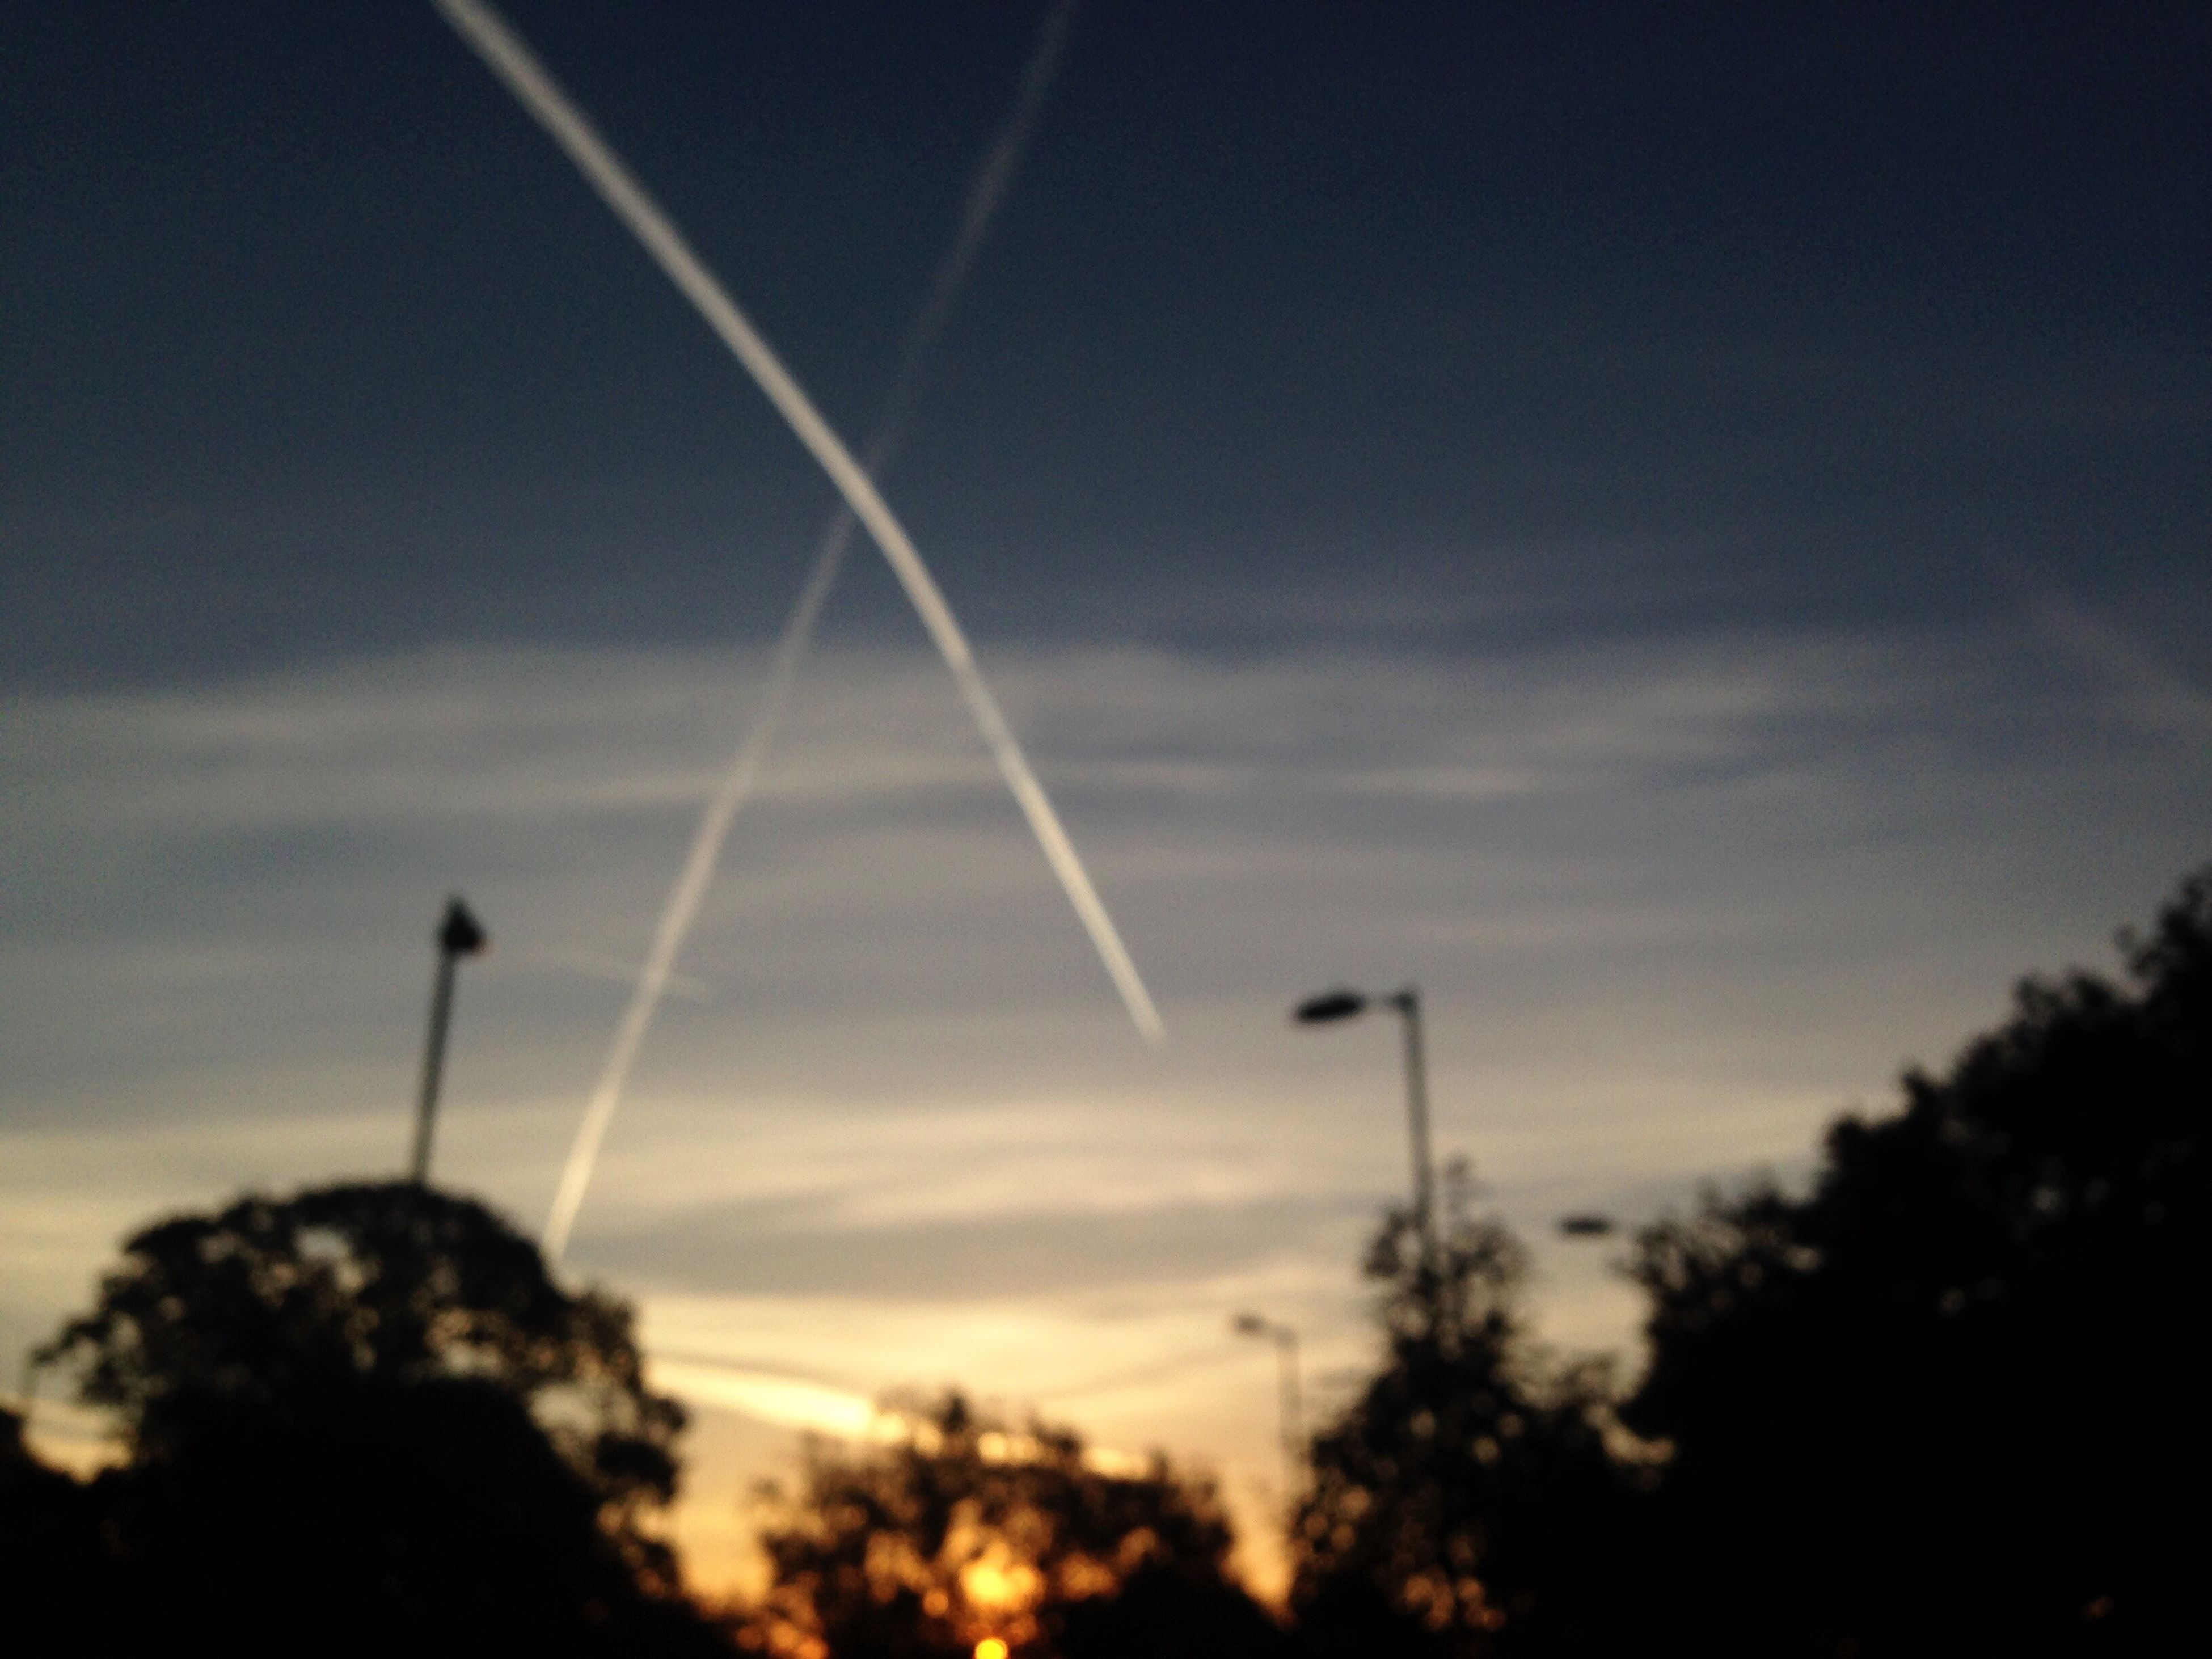 vapor trail, nature, sky, low angle view, no people, outdoors, day